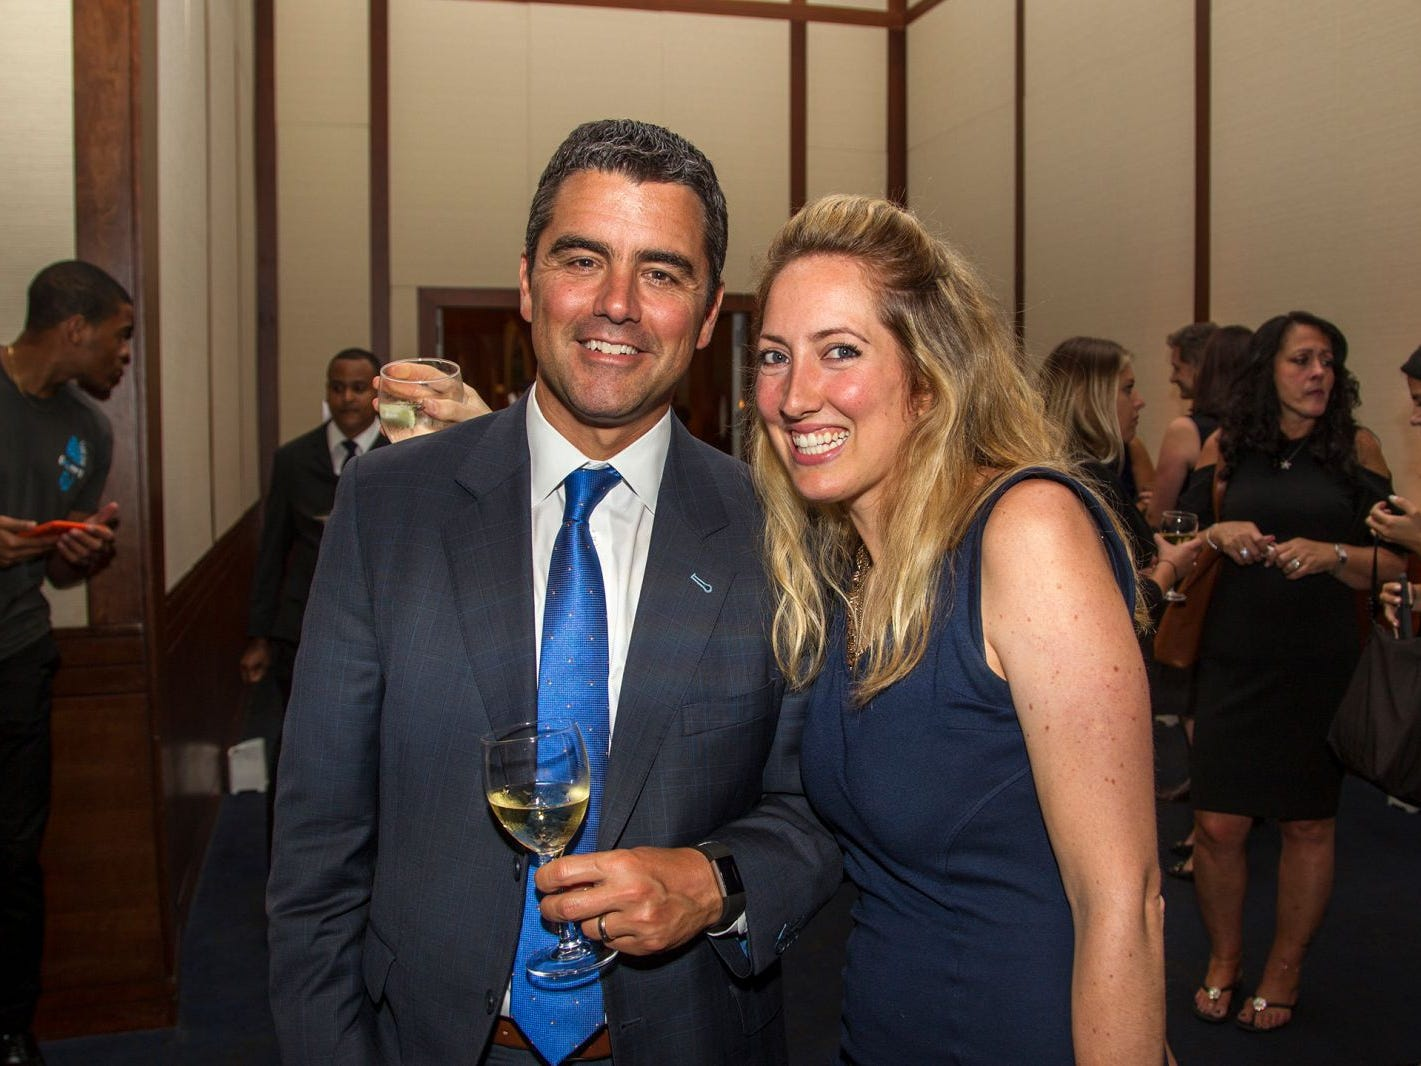 Jim and Alexis. 11th annual IronMatt Fundraiser Gala at Pier 60 Chelsea Piers. 09/20/2018